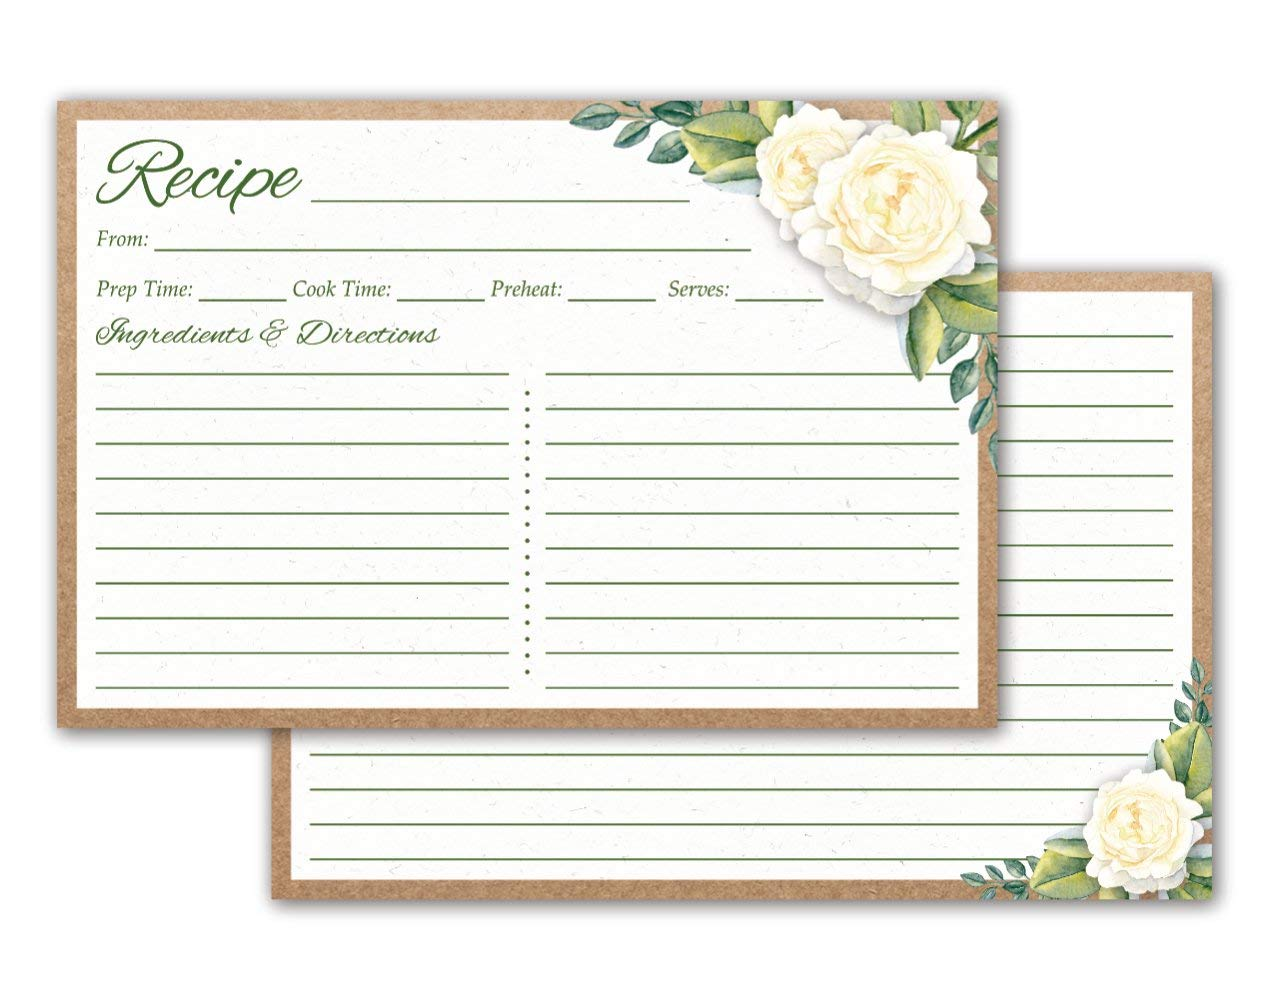 Crown Bee Printworks Recipe Cards 4x6 Double Sided (Floral) 50/set - Thick Cardstock, Made in the USA